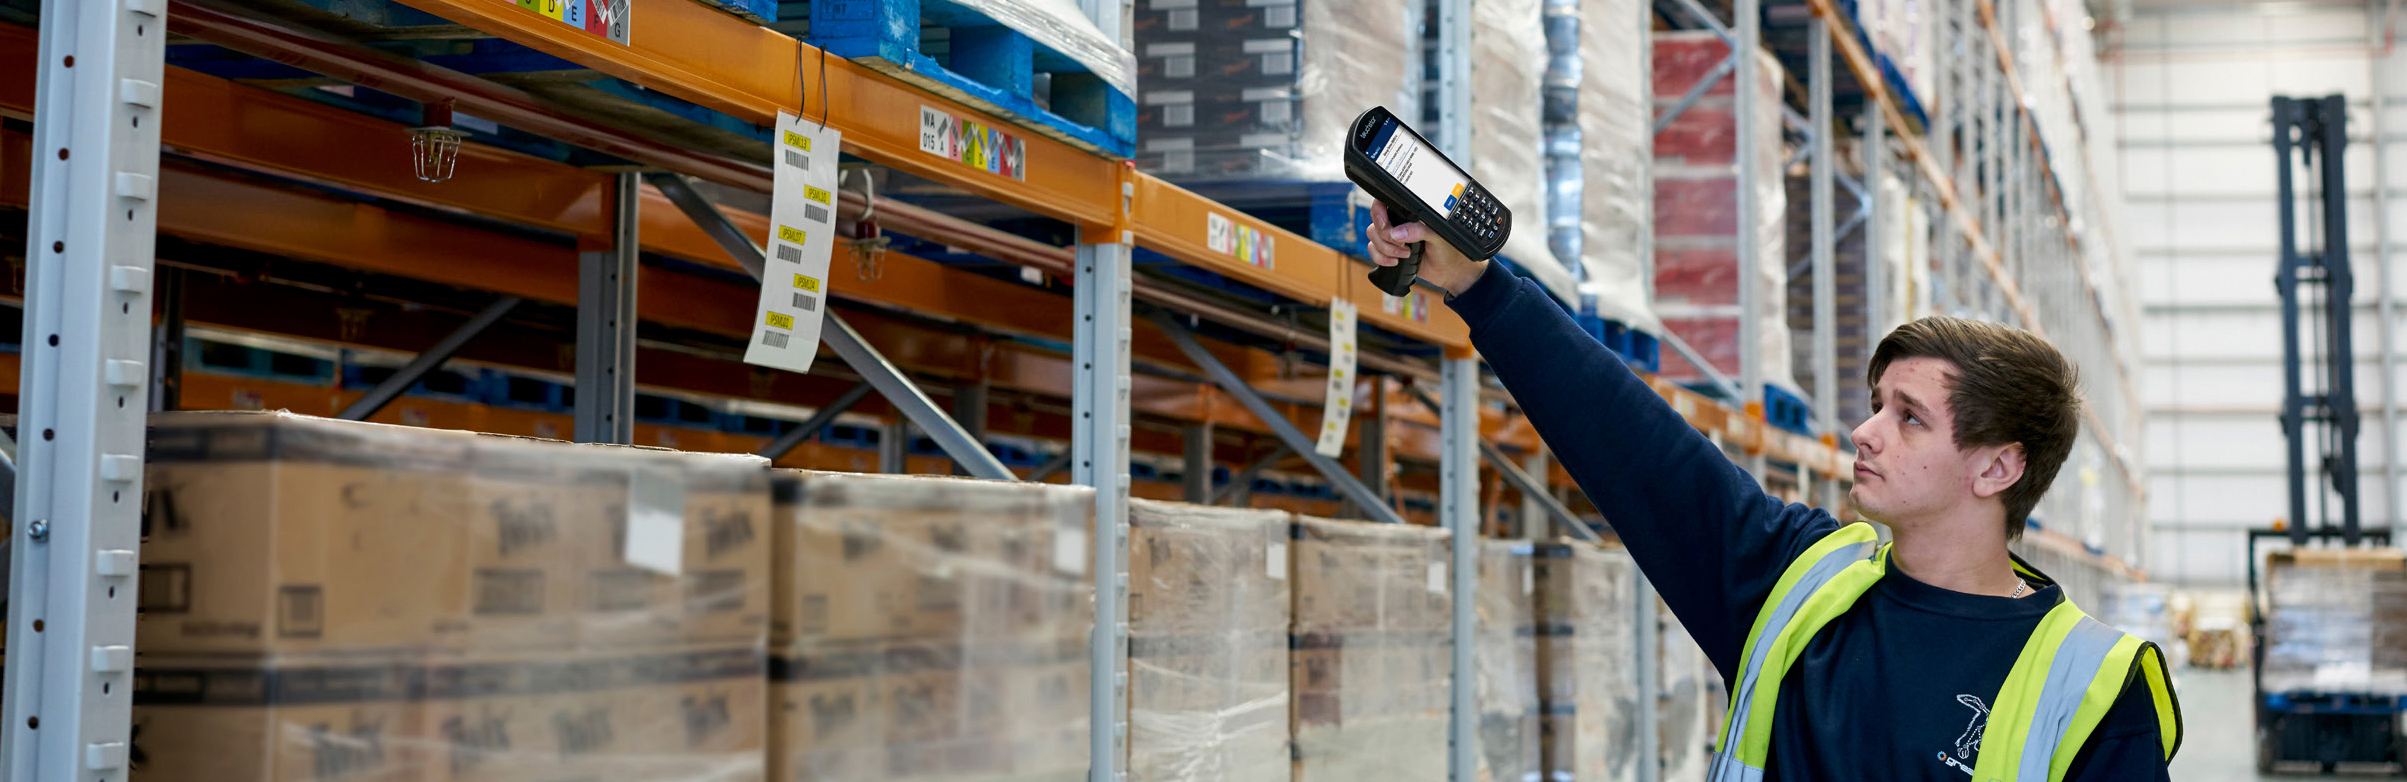 Rugged mobile devices in the warehouse